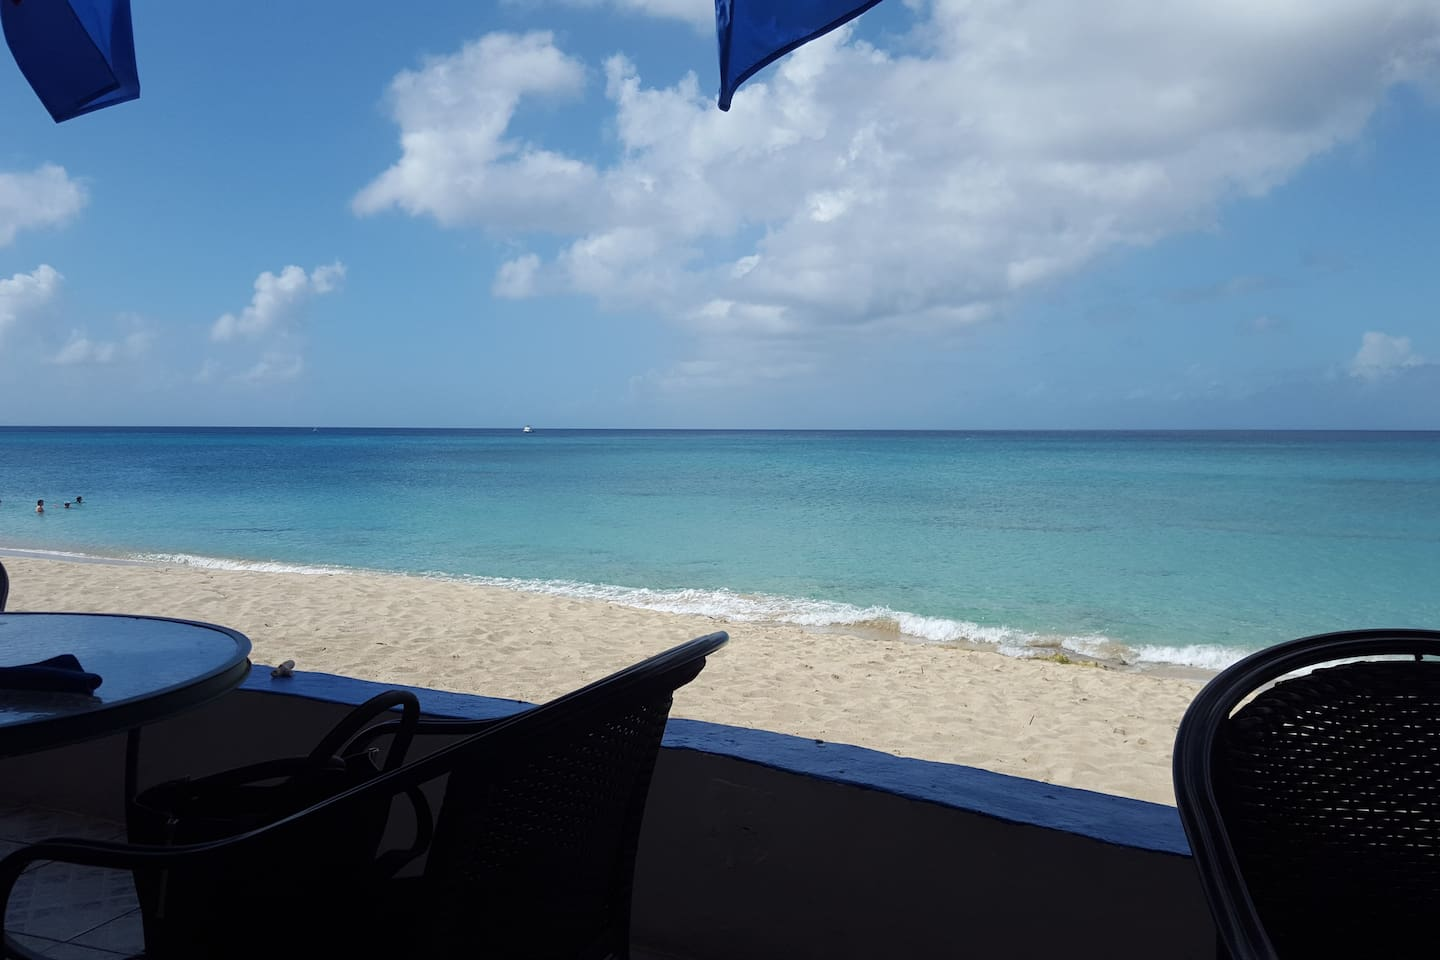 Sand Castle on the Beach restaurant with beautiful view of Dorch beach just 5-8 min drive away!